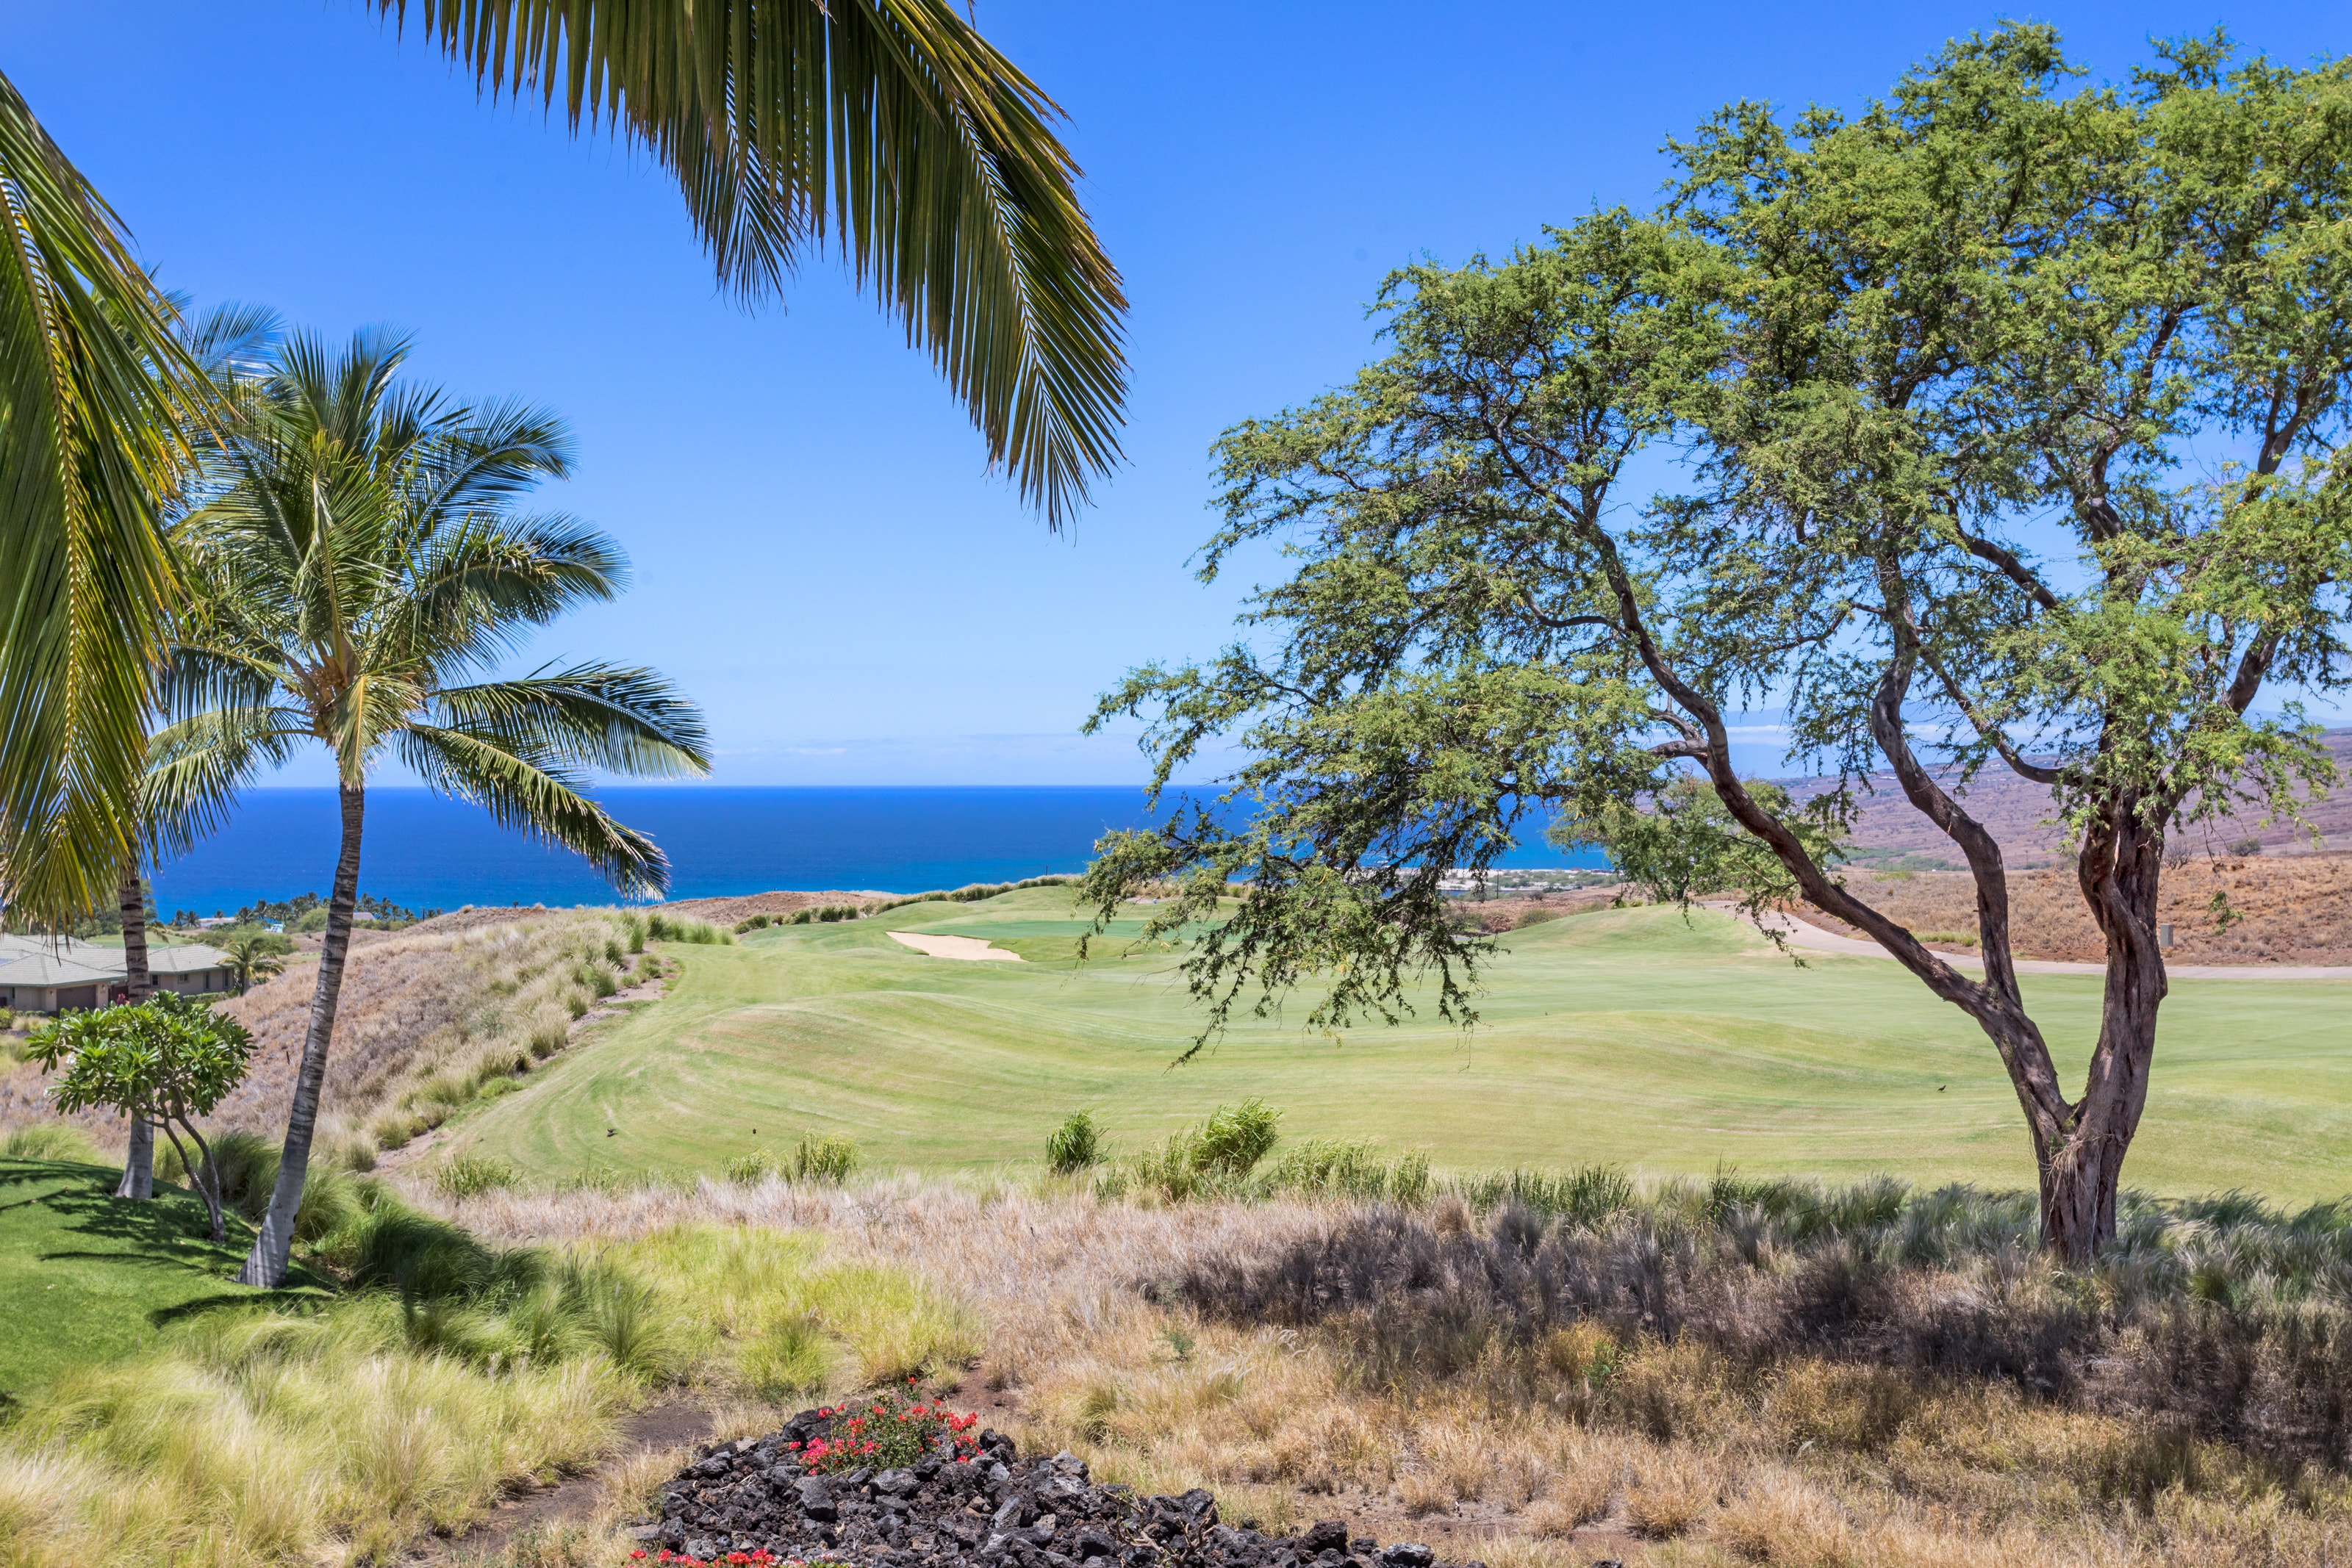 Handsomely-Designed 3 Bedroom with Lanai, Golf & Ocean Views